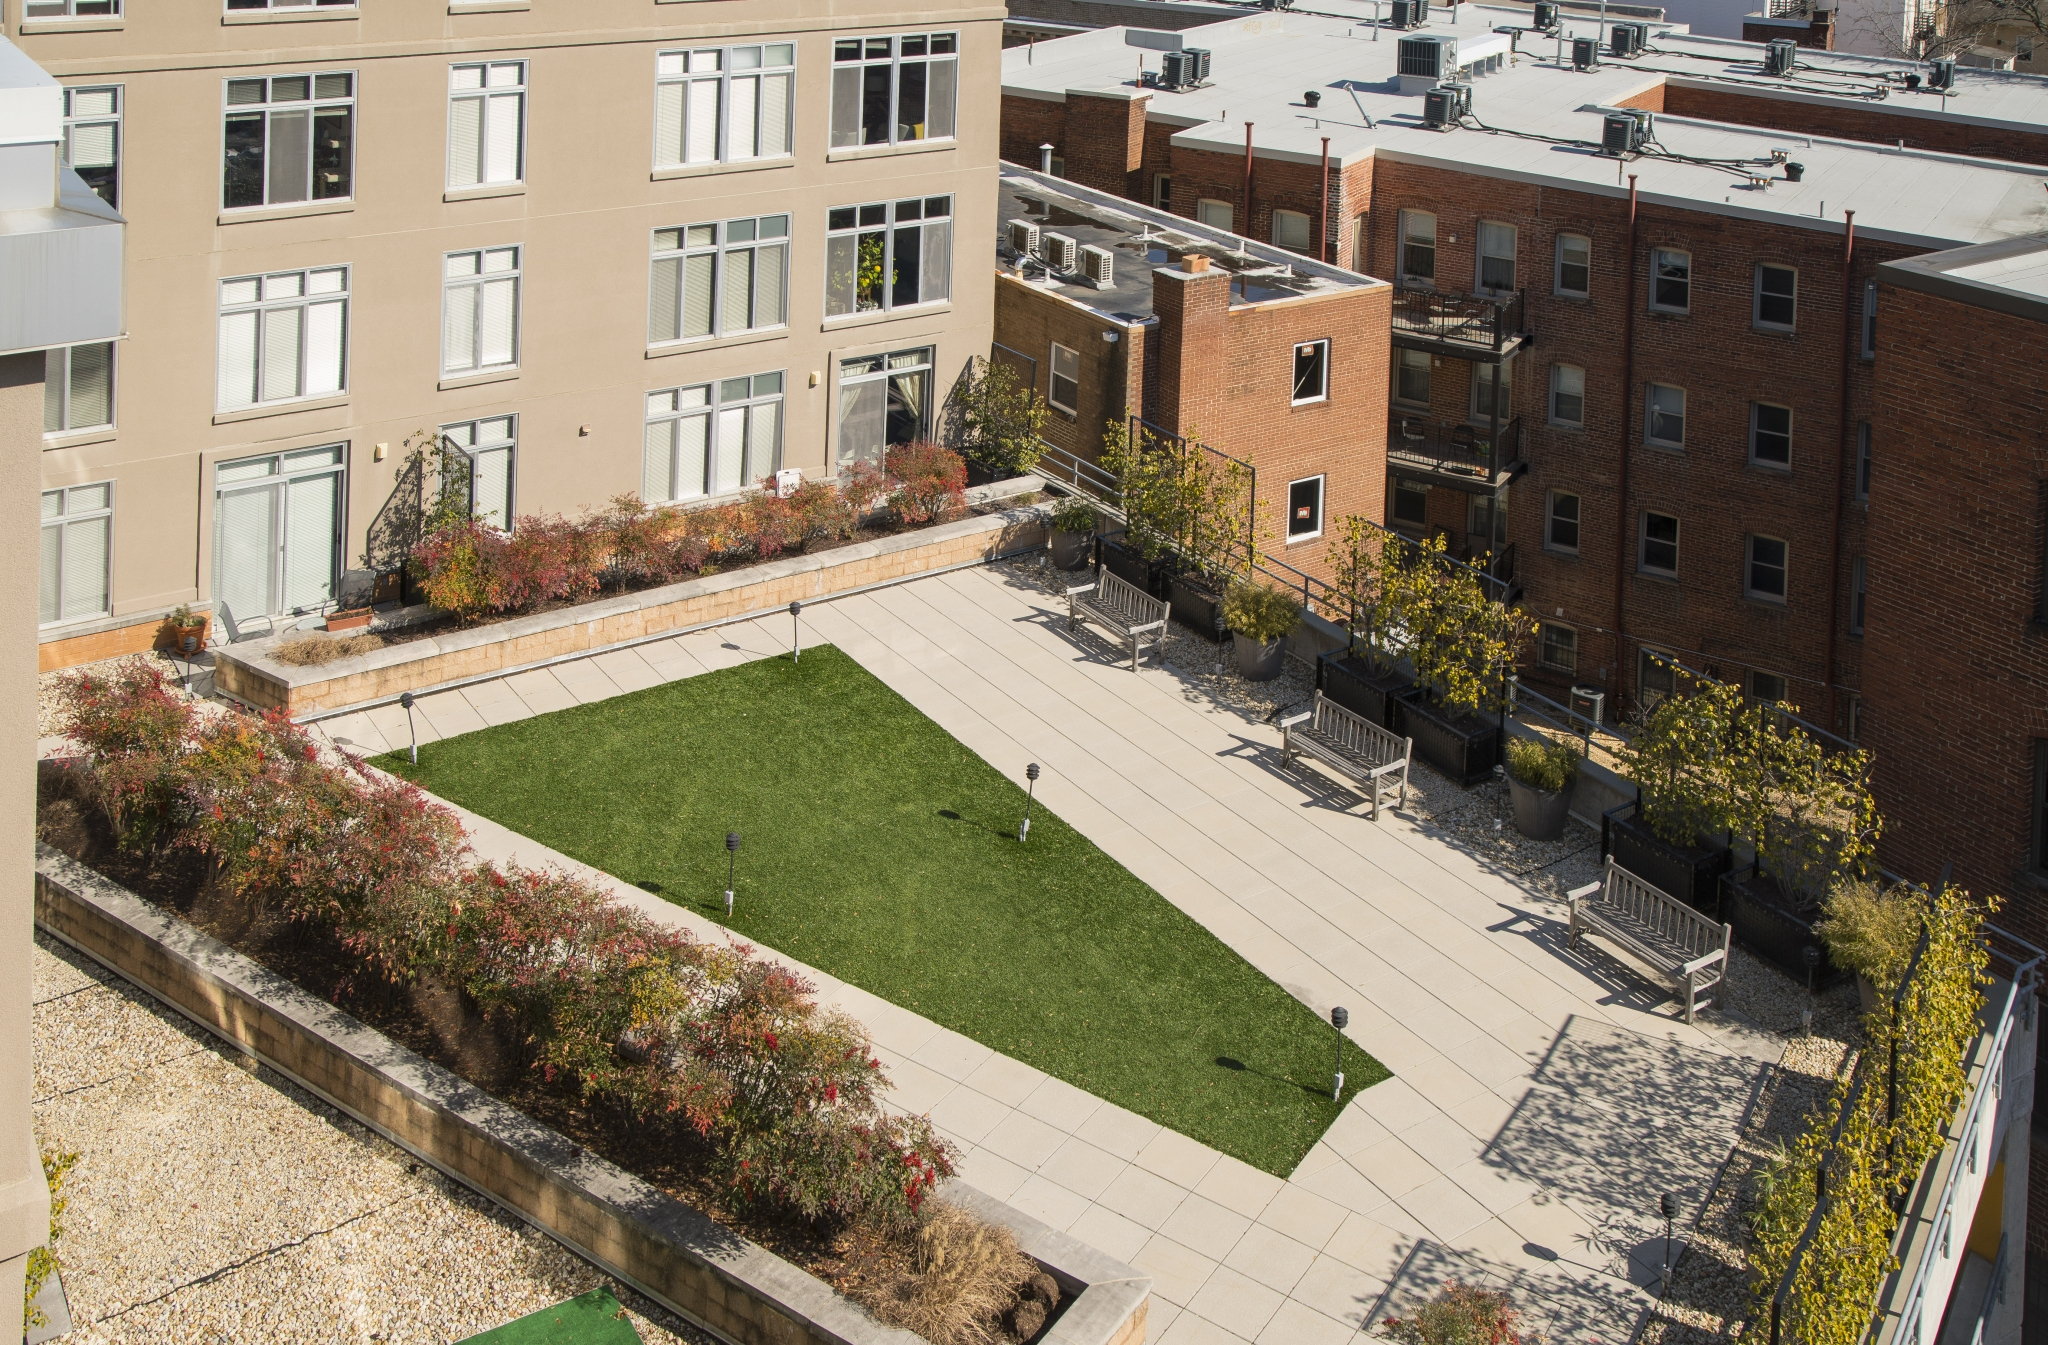 Beautifully Landscaped Grounds 1 | Apartments For Rent Washington DC | Park Triangle Apartments Lofts and Flats